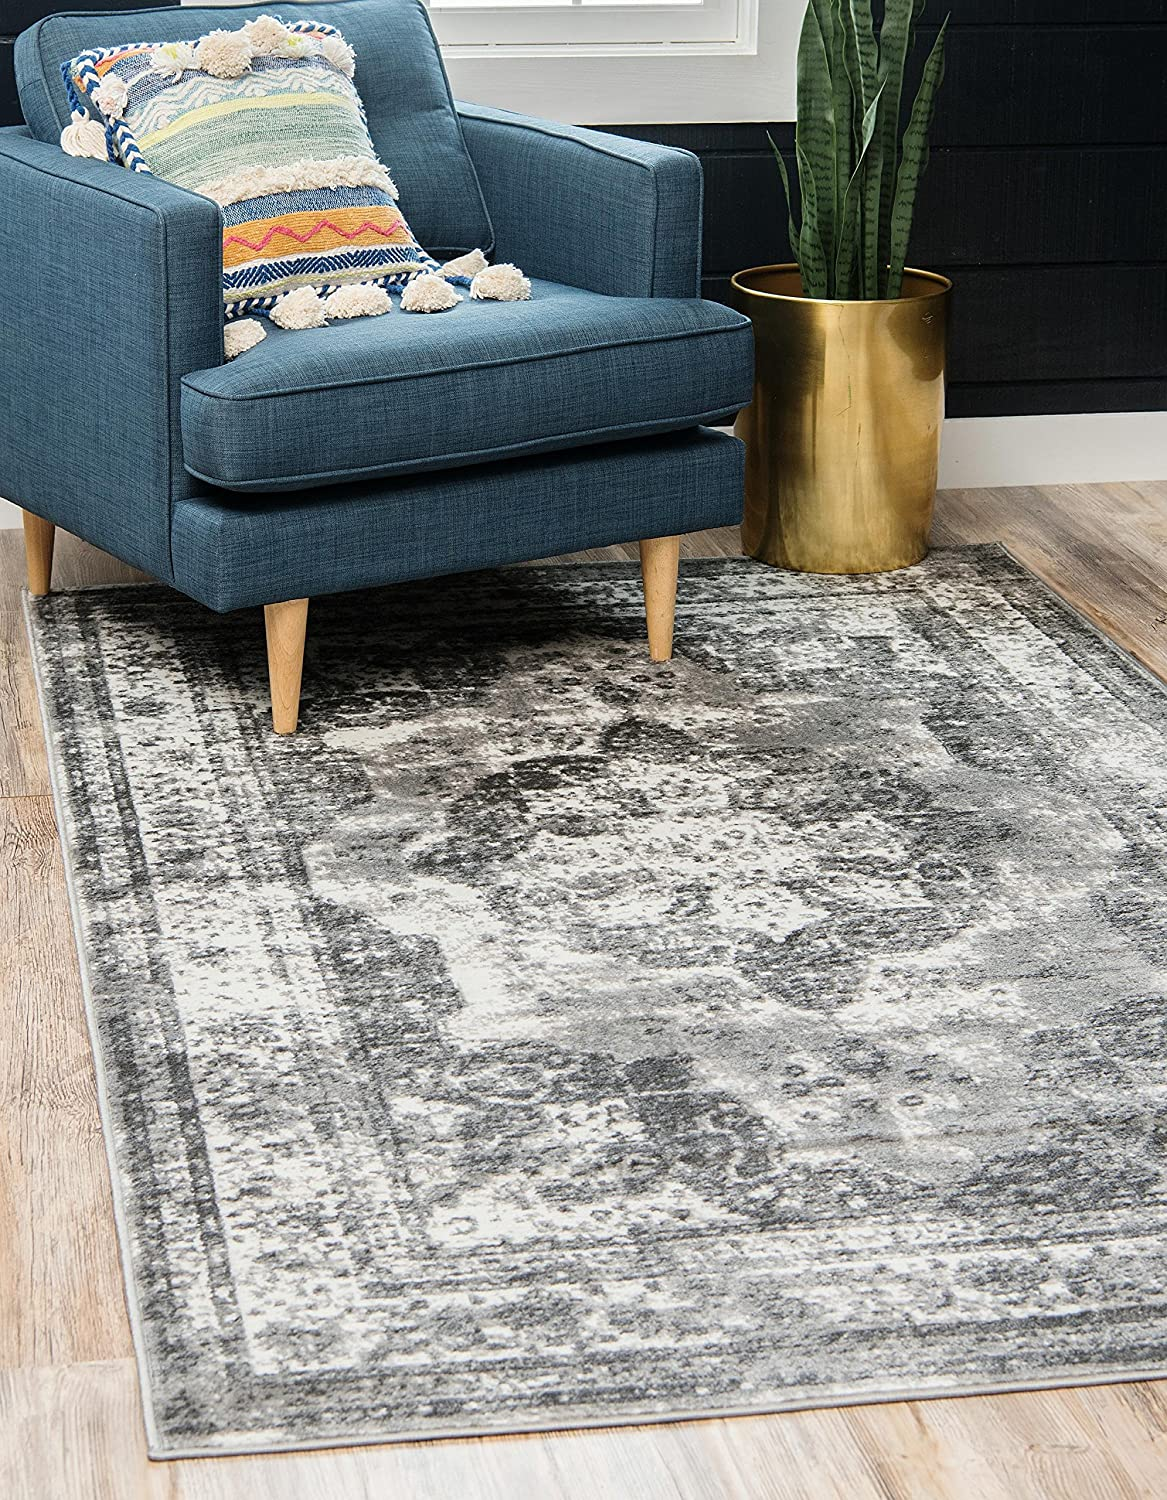 Unique Loom Sofia Collection Traditional Vintage Gray Area Rug (5' x 8')